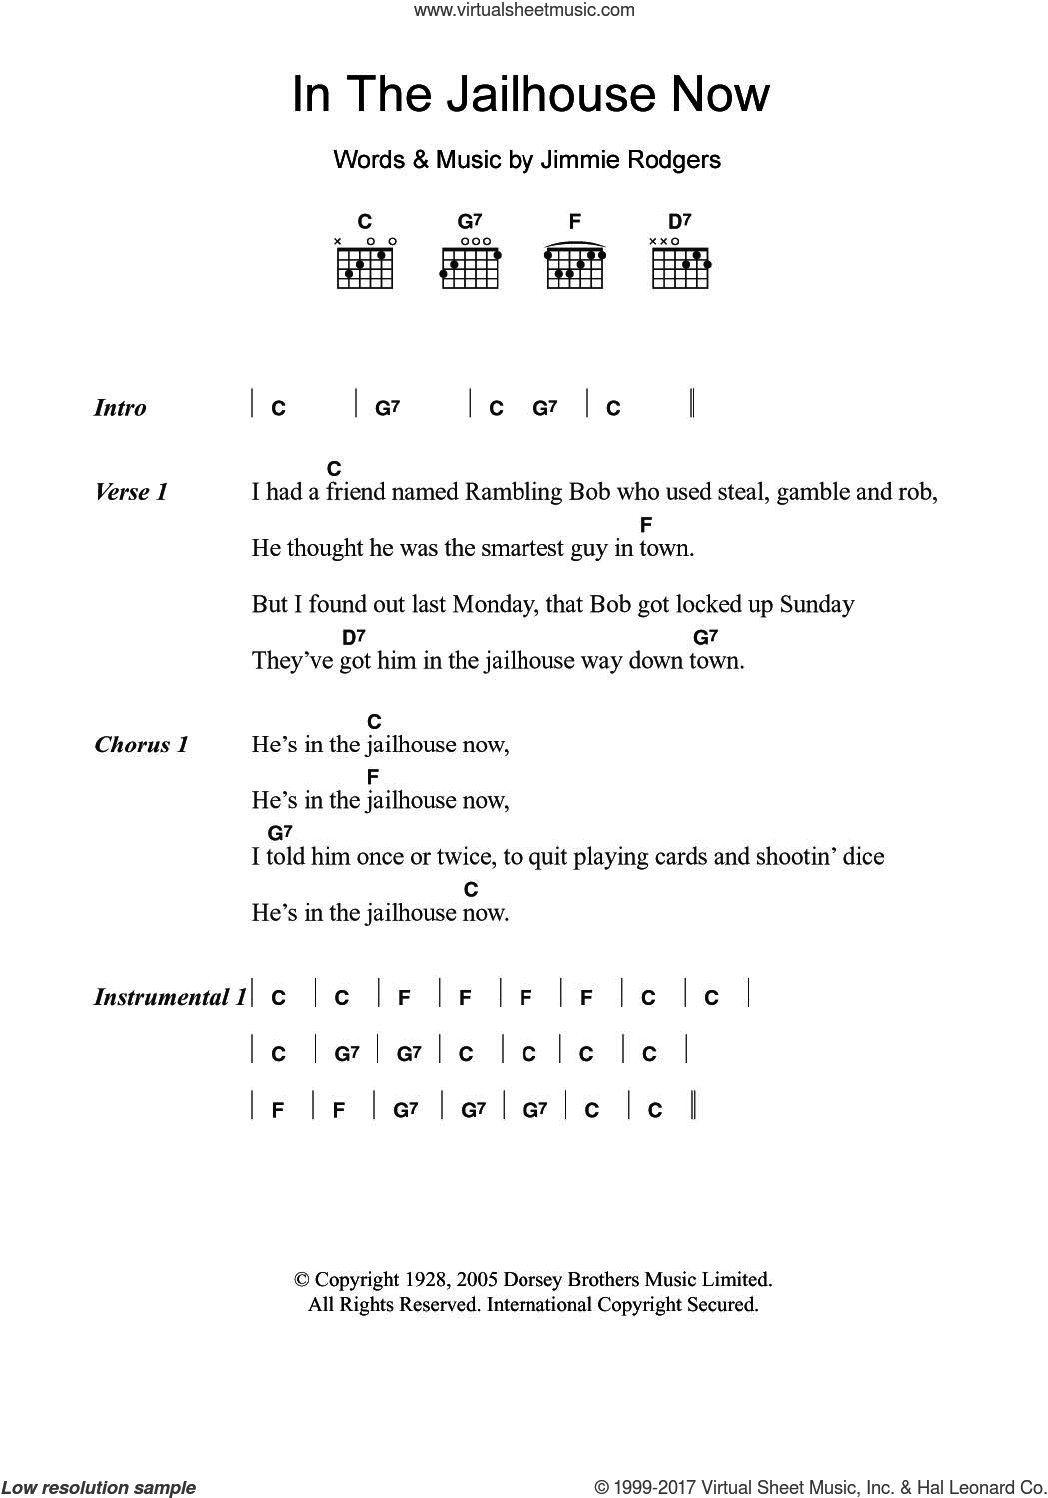 In The Jailhouse Now sheet music for guitar (chords) by Jimmie Rodgers, intermediate skill level